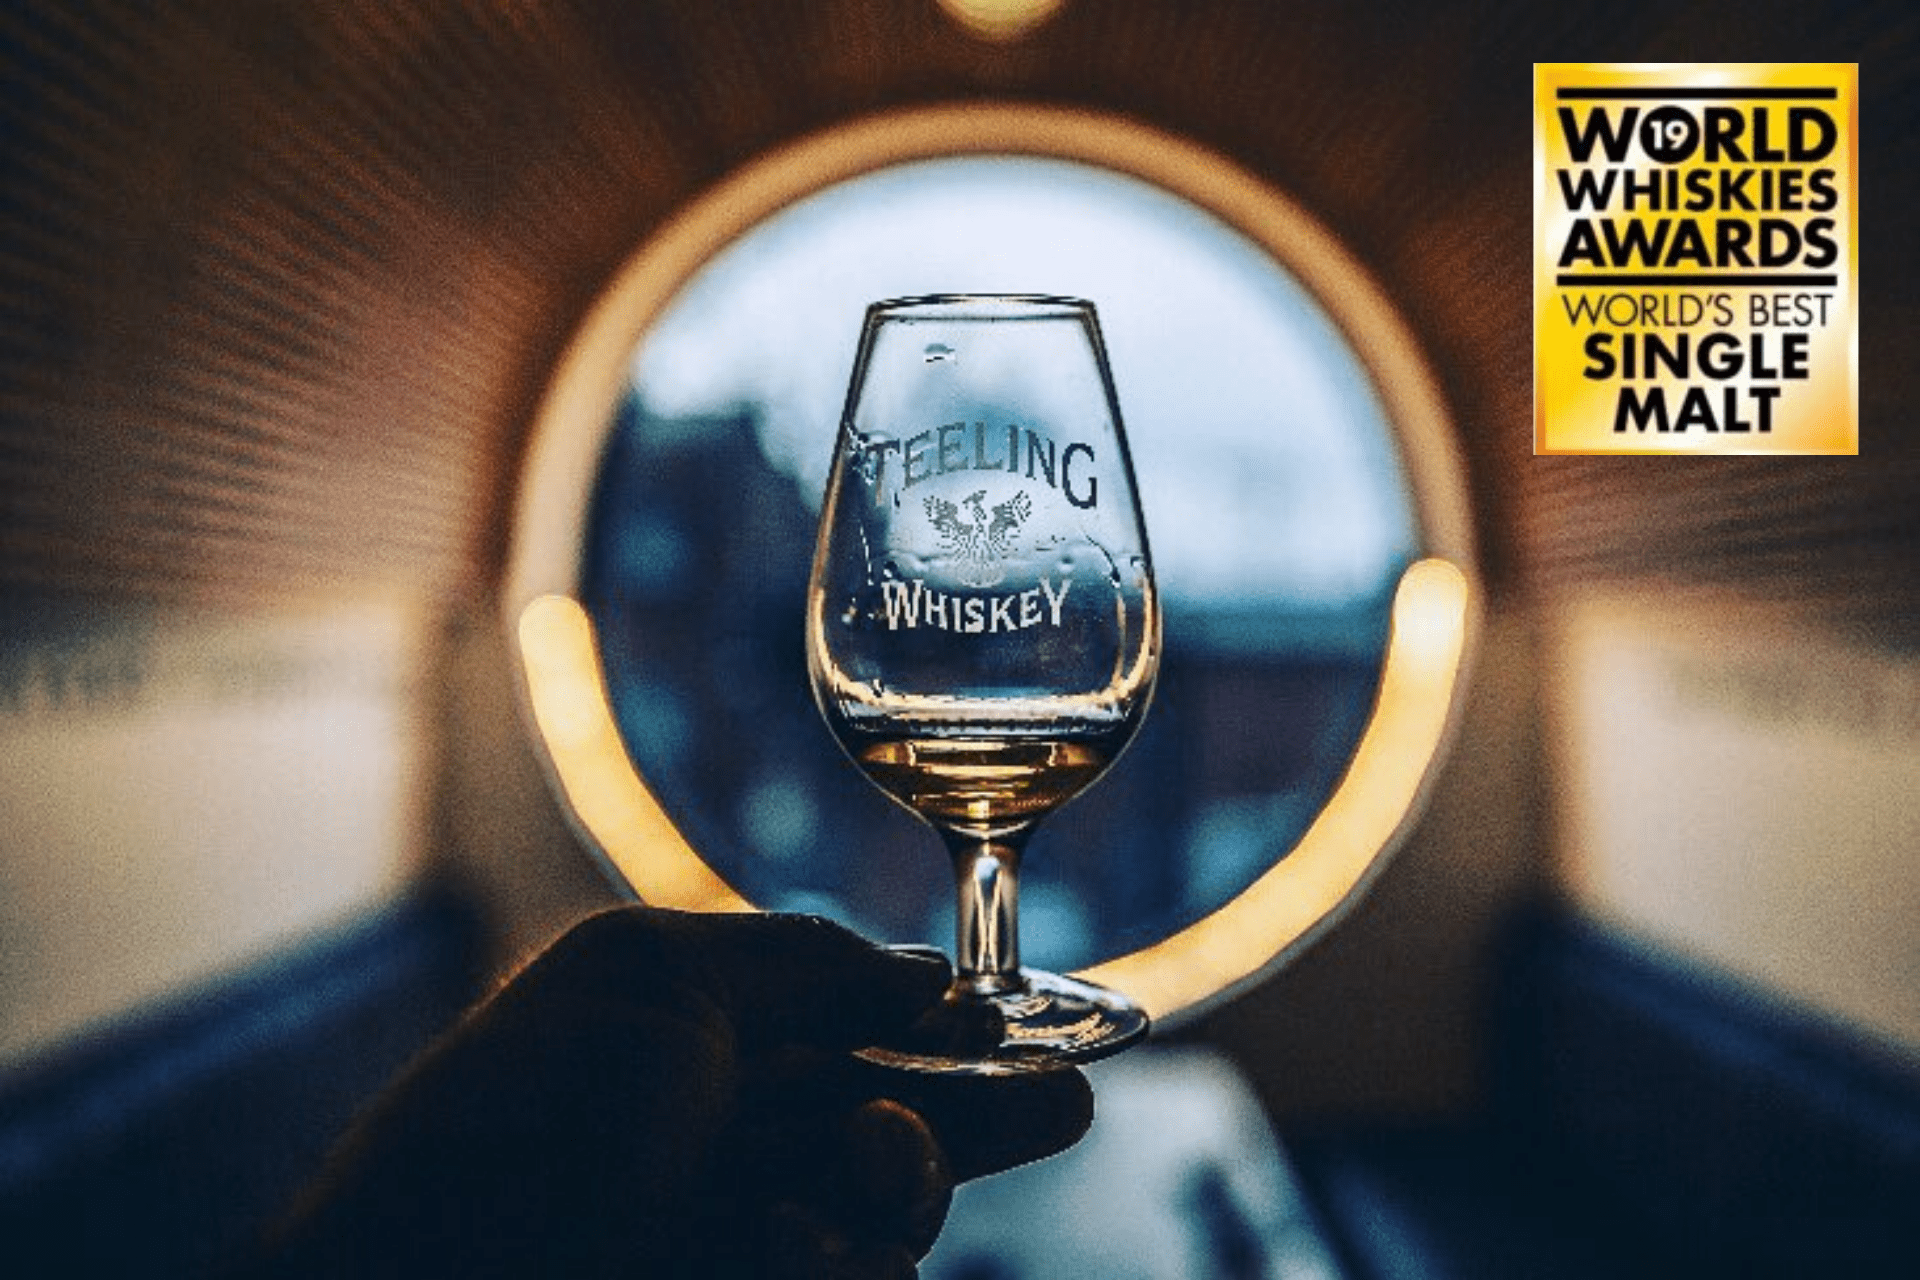 Teeling Whiskey Masterclass with Ambassador Mairead Victory: Home of the World's Best Single Malt